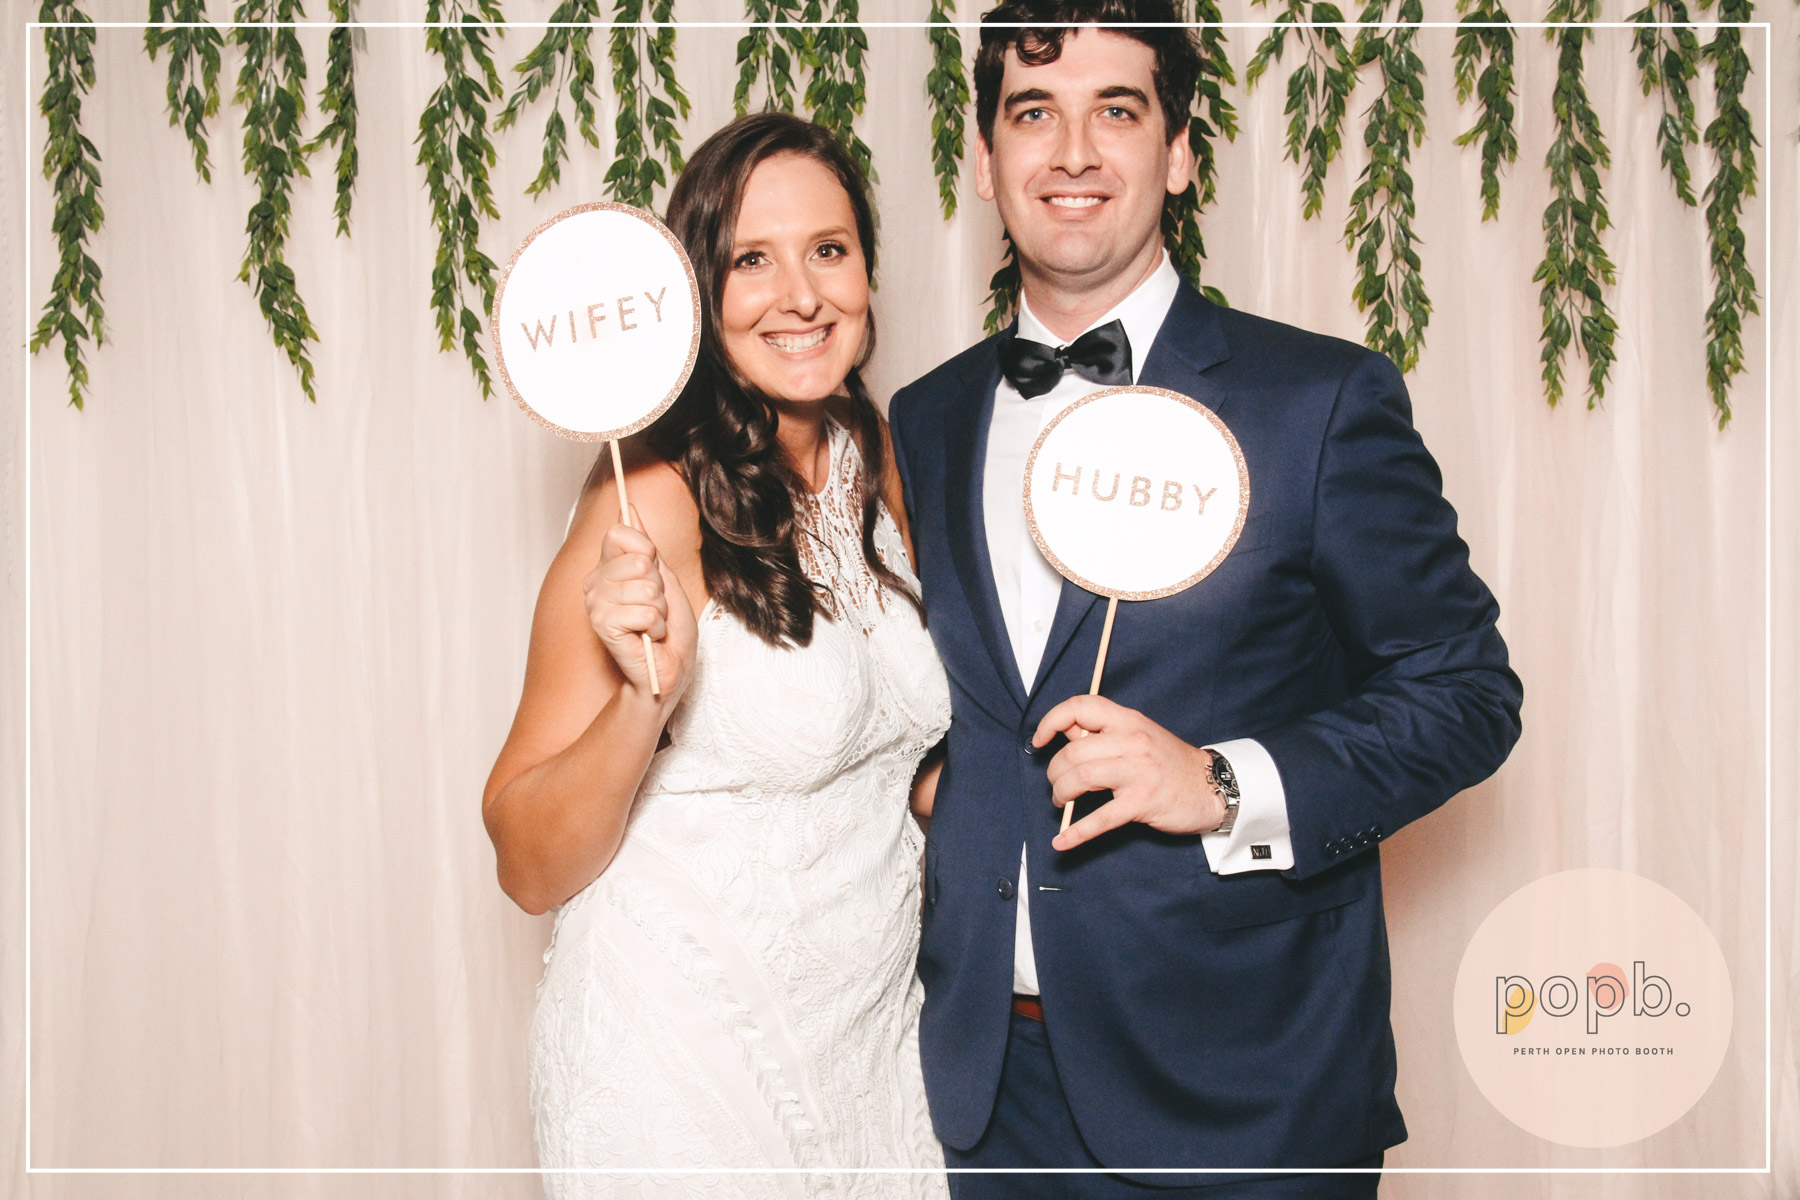 Samantha + nathan's Wedding - PASSWORD: PROVIDED ON THE NIGHT- ALL LOWERCASE -